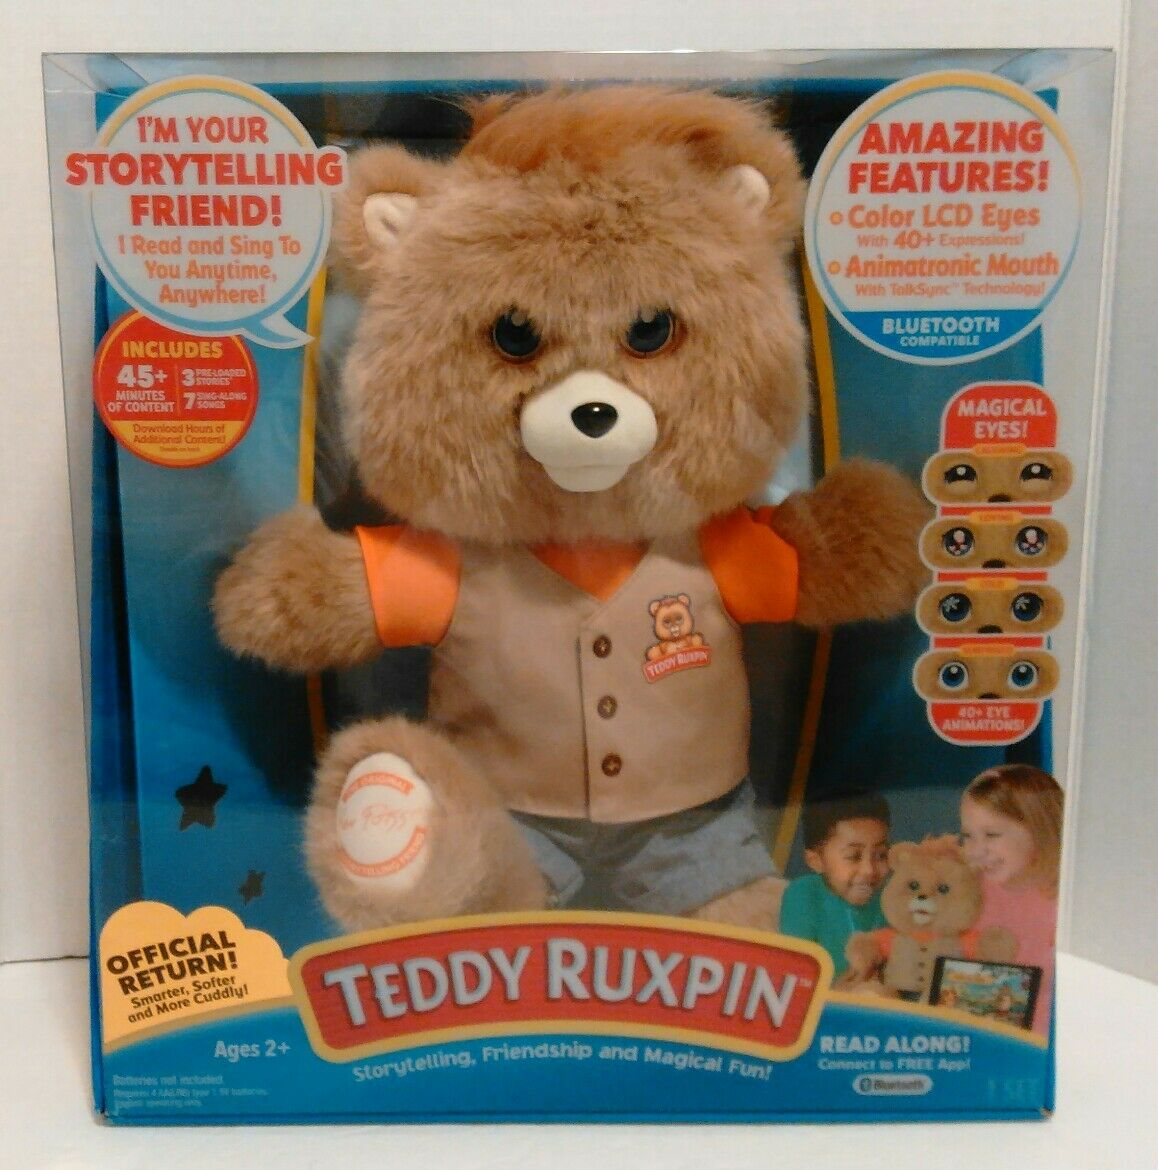 2017 Teddy Ruxpin Official Return of the Storytime & Magical Bear blutooth NEW